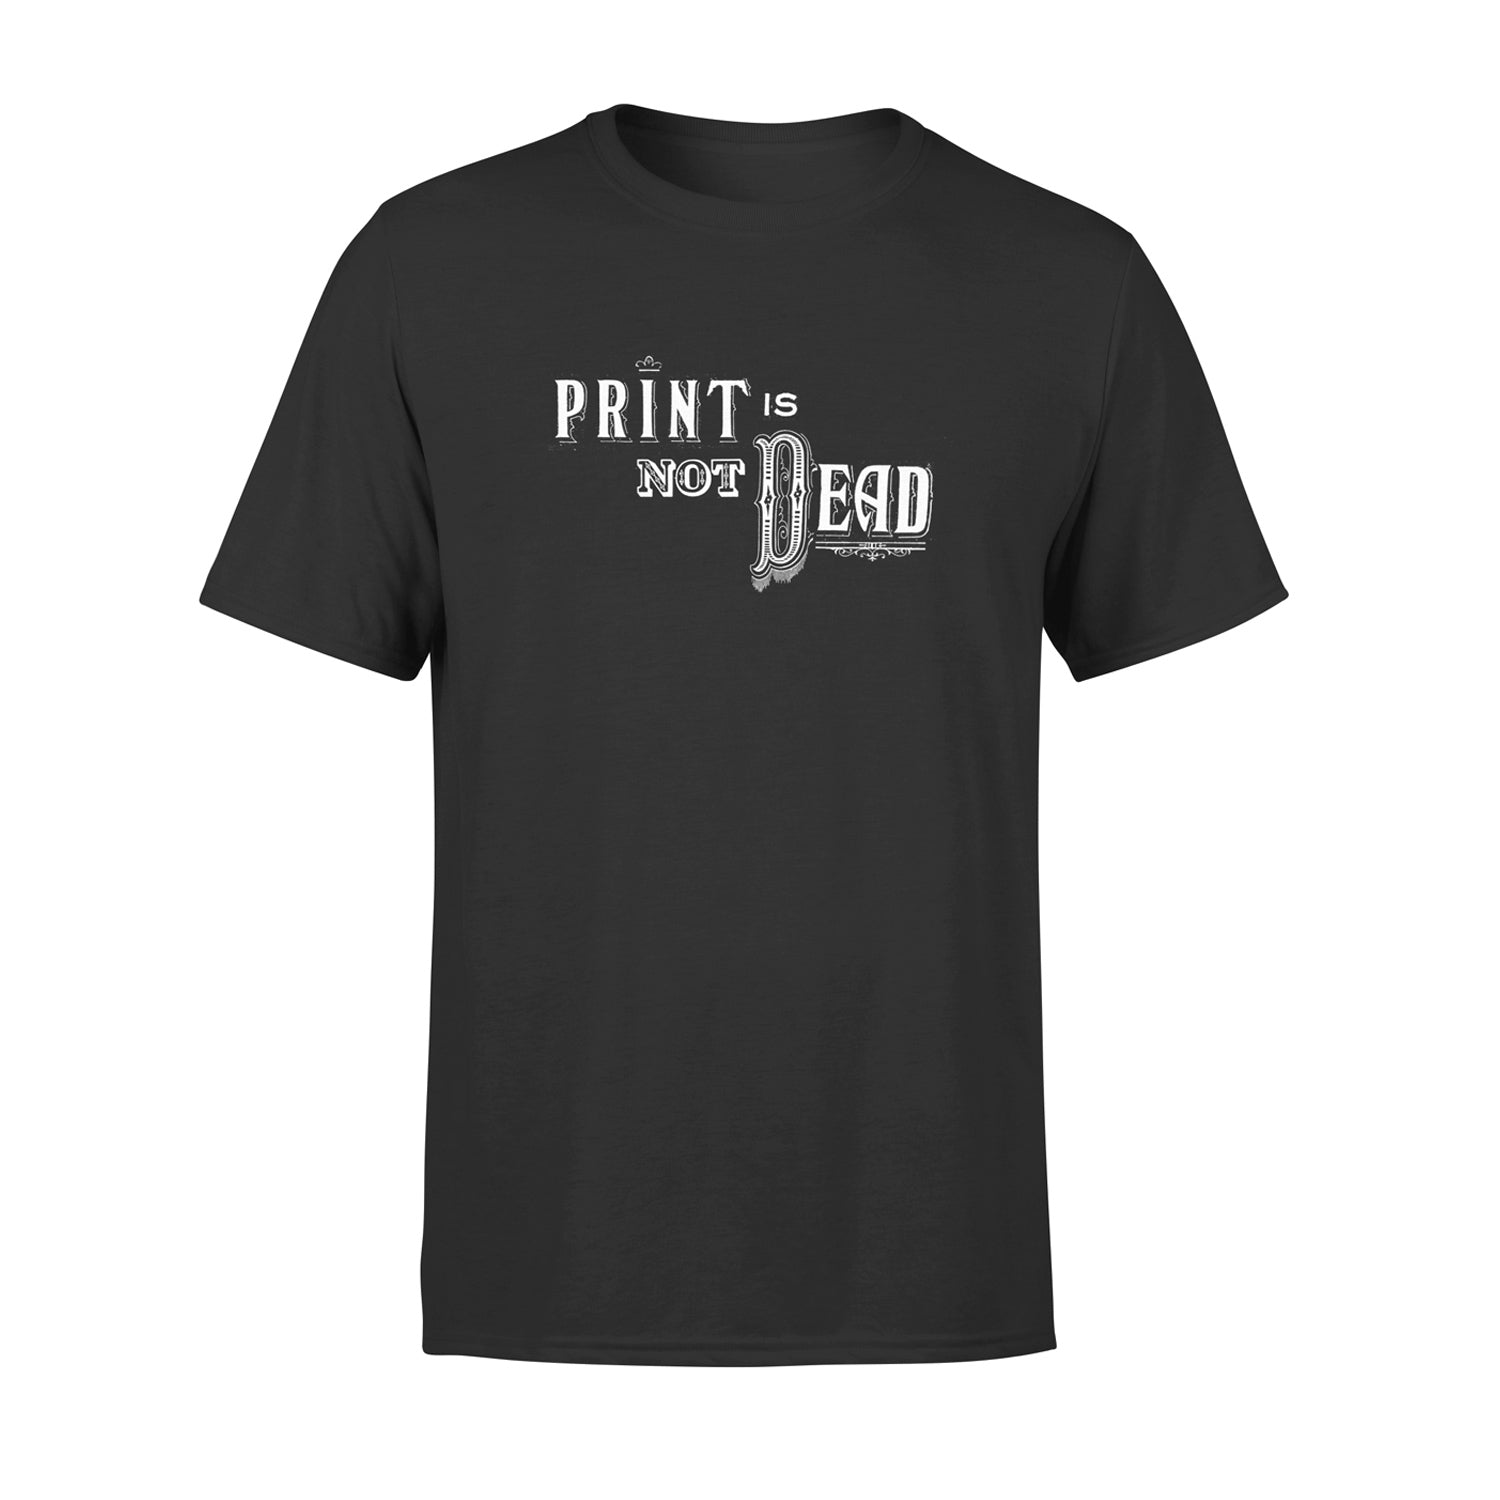 black t shirt for designers that reads 'print is not dead'